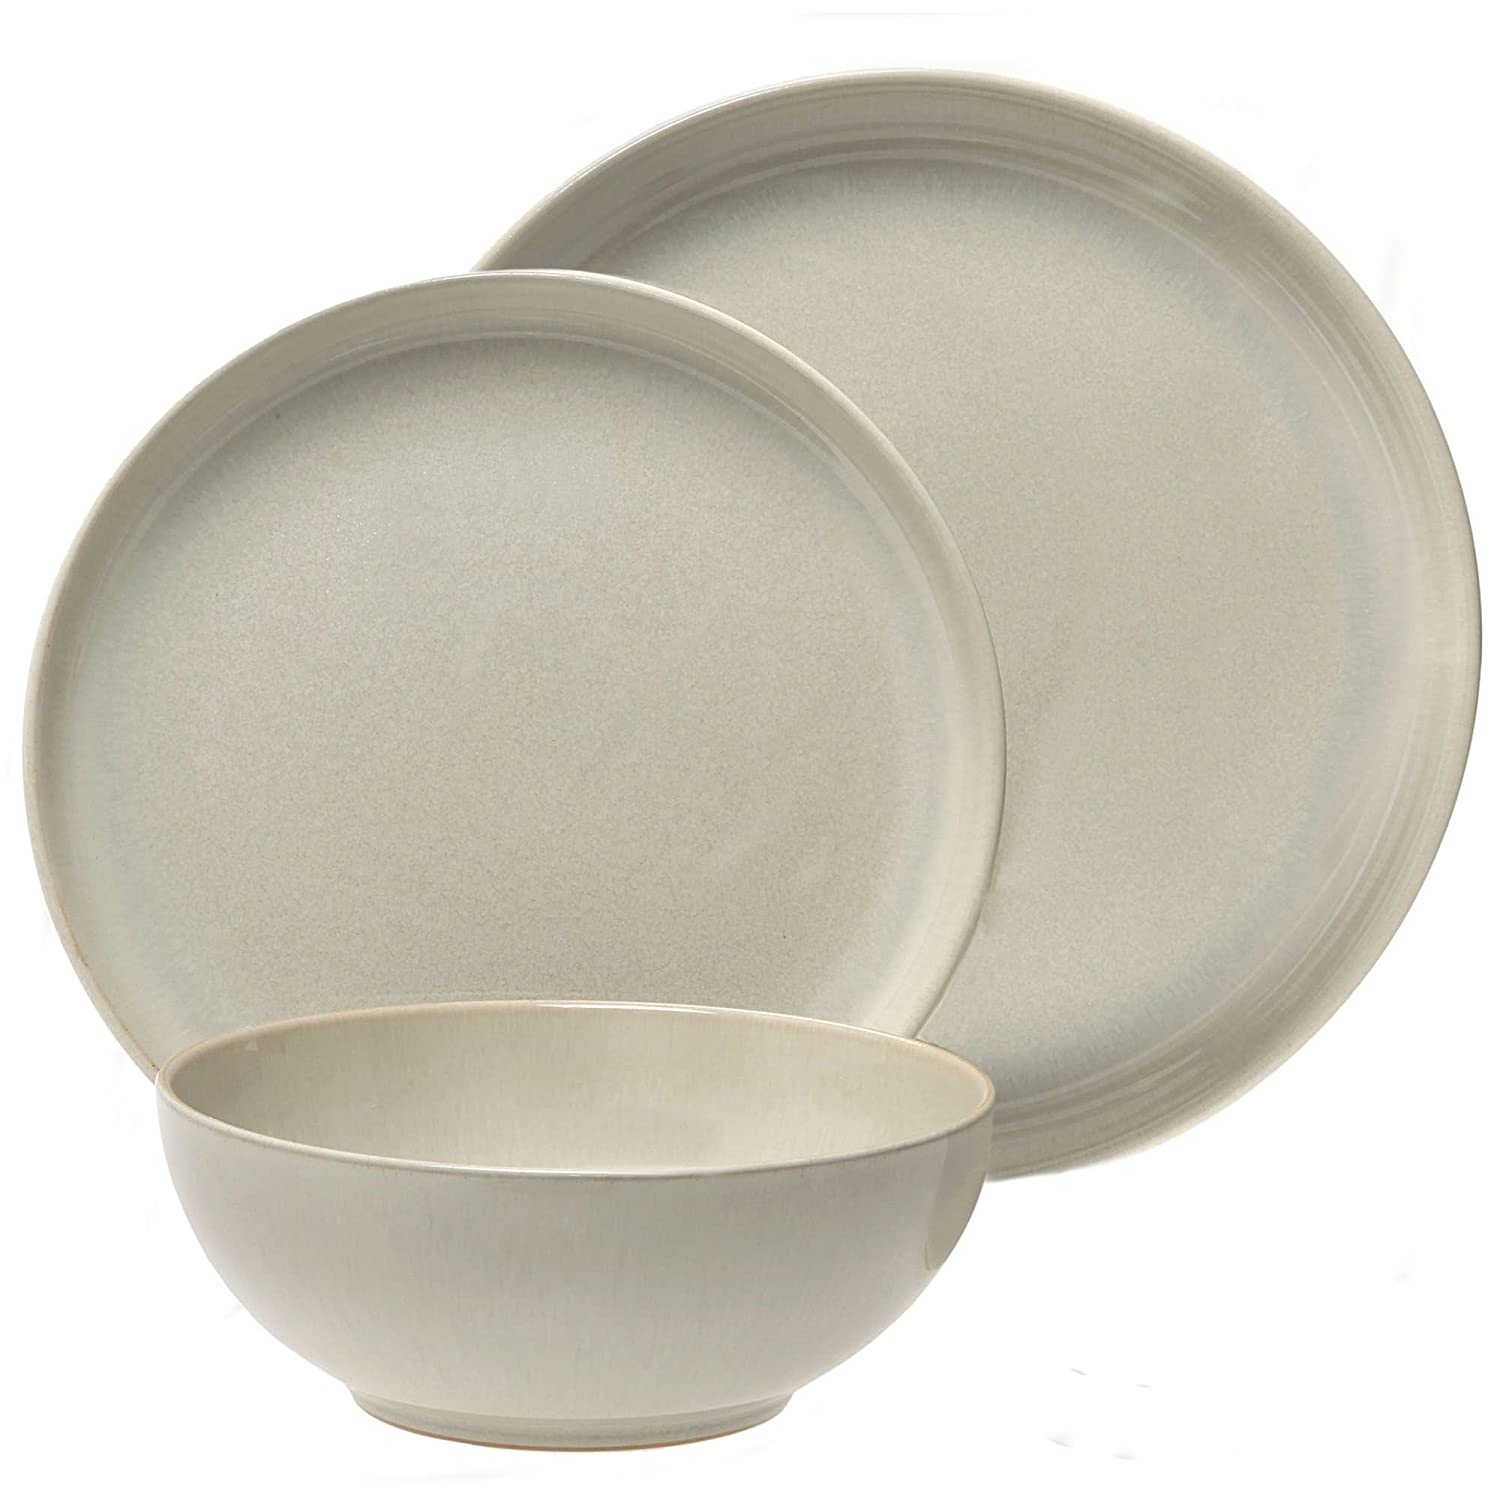 Denby 12-Piece Stoneware Linen Kitchen Collection Set, Beige 016042958